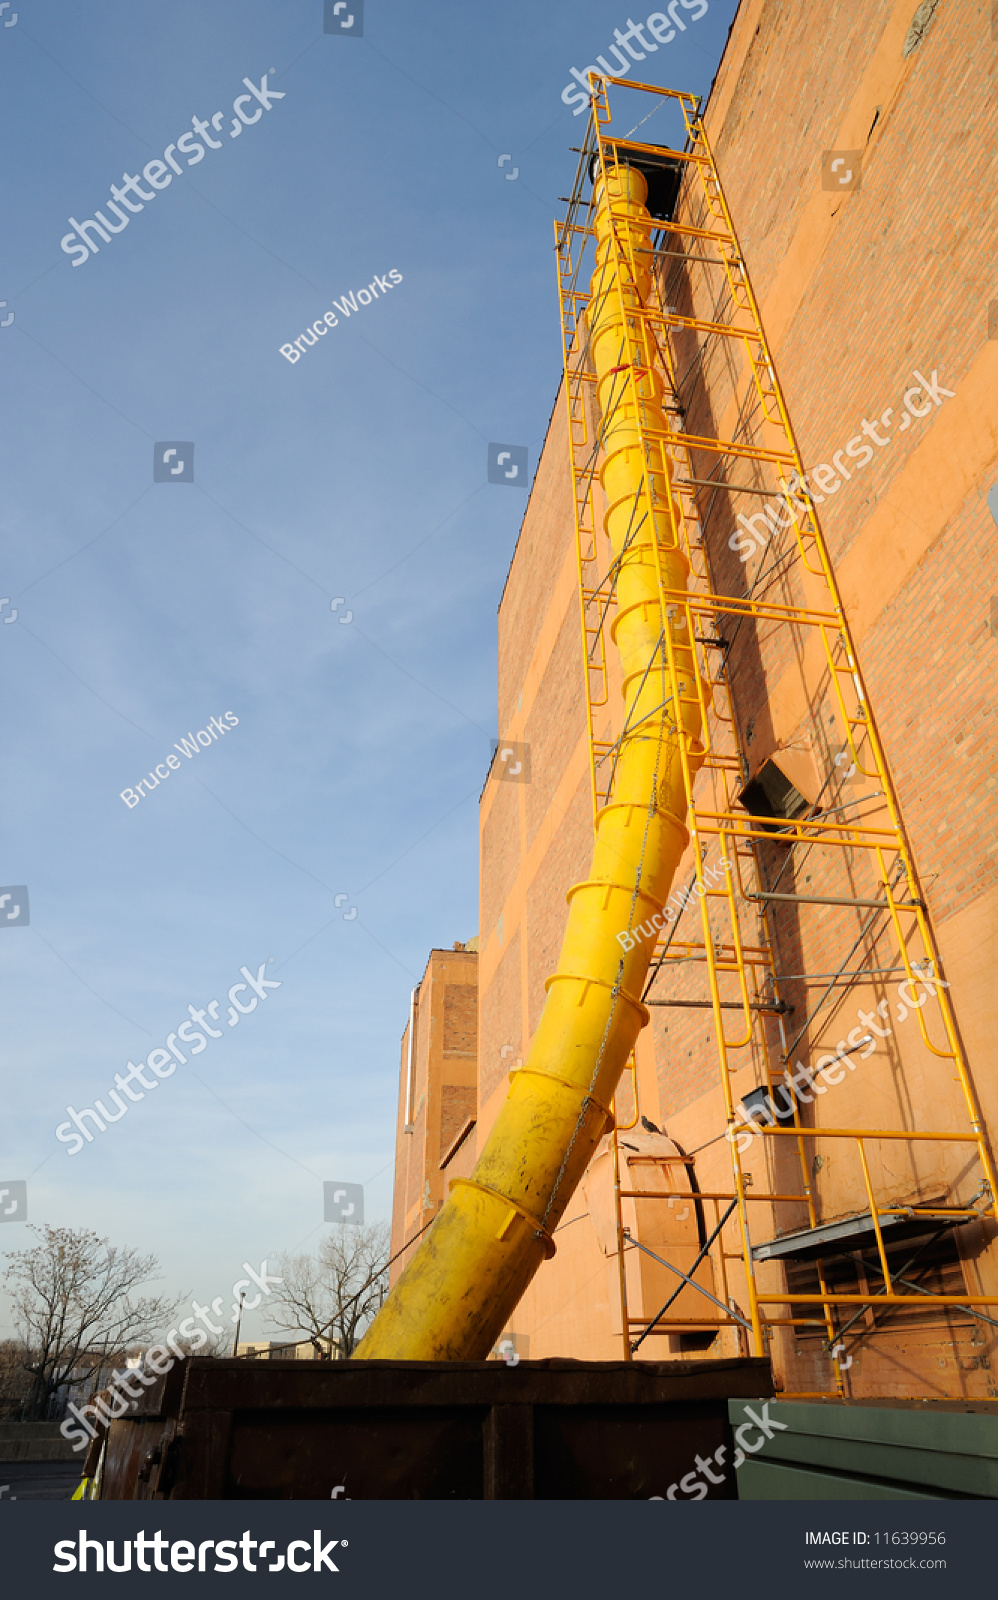 Waste Chute Used In Construction Demolition Stock Photo 11639956 : Shutterstock